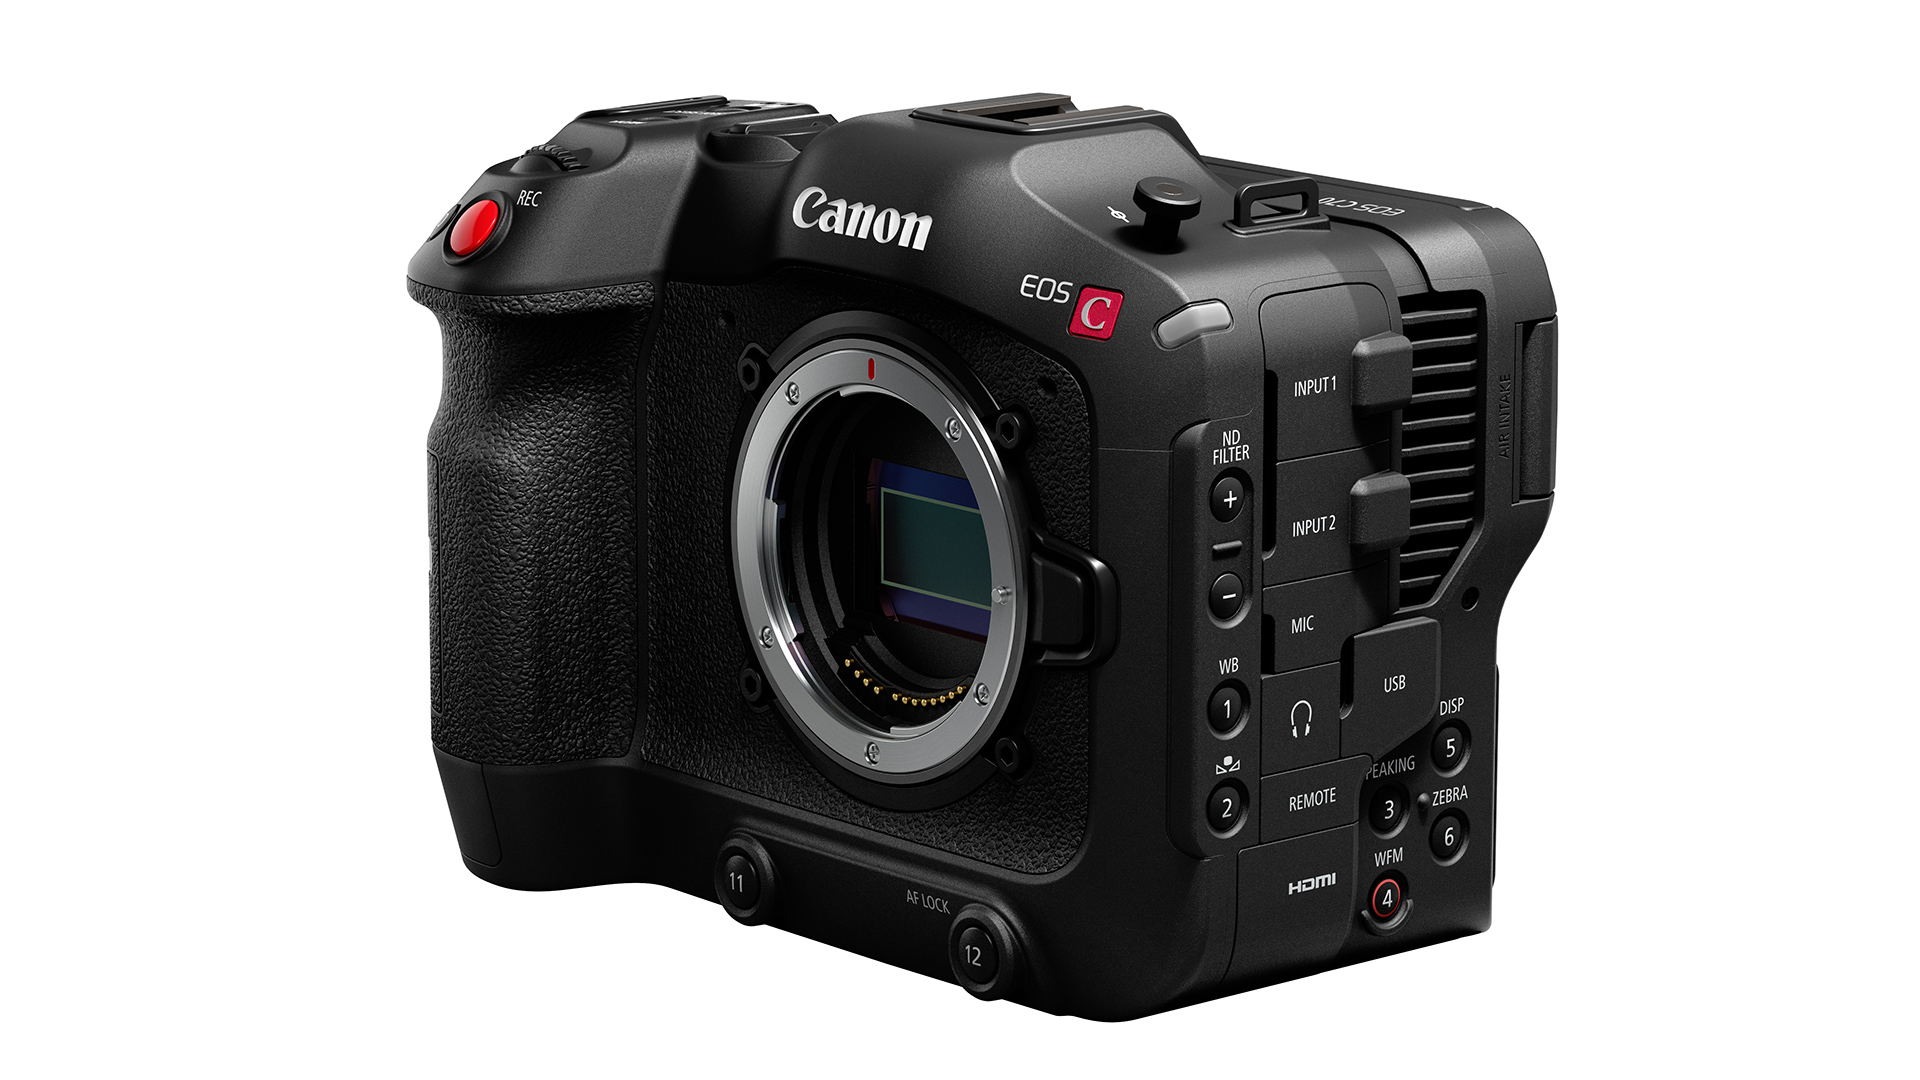 Canon C70 cinema camera